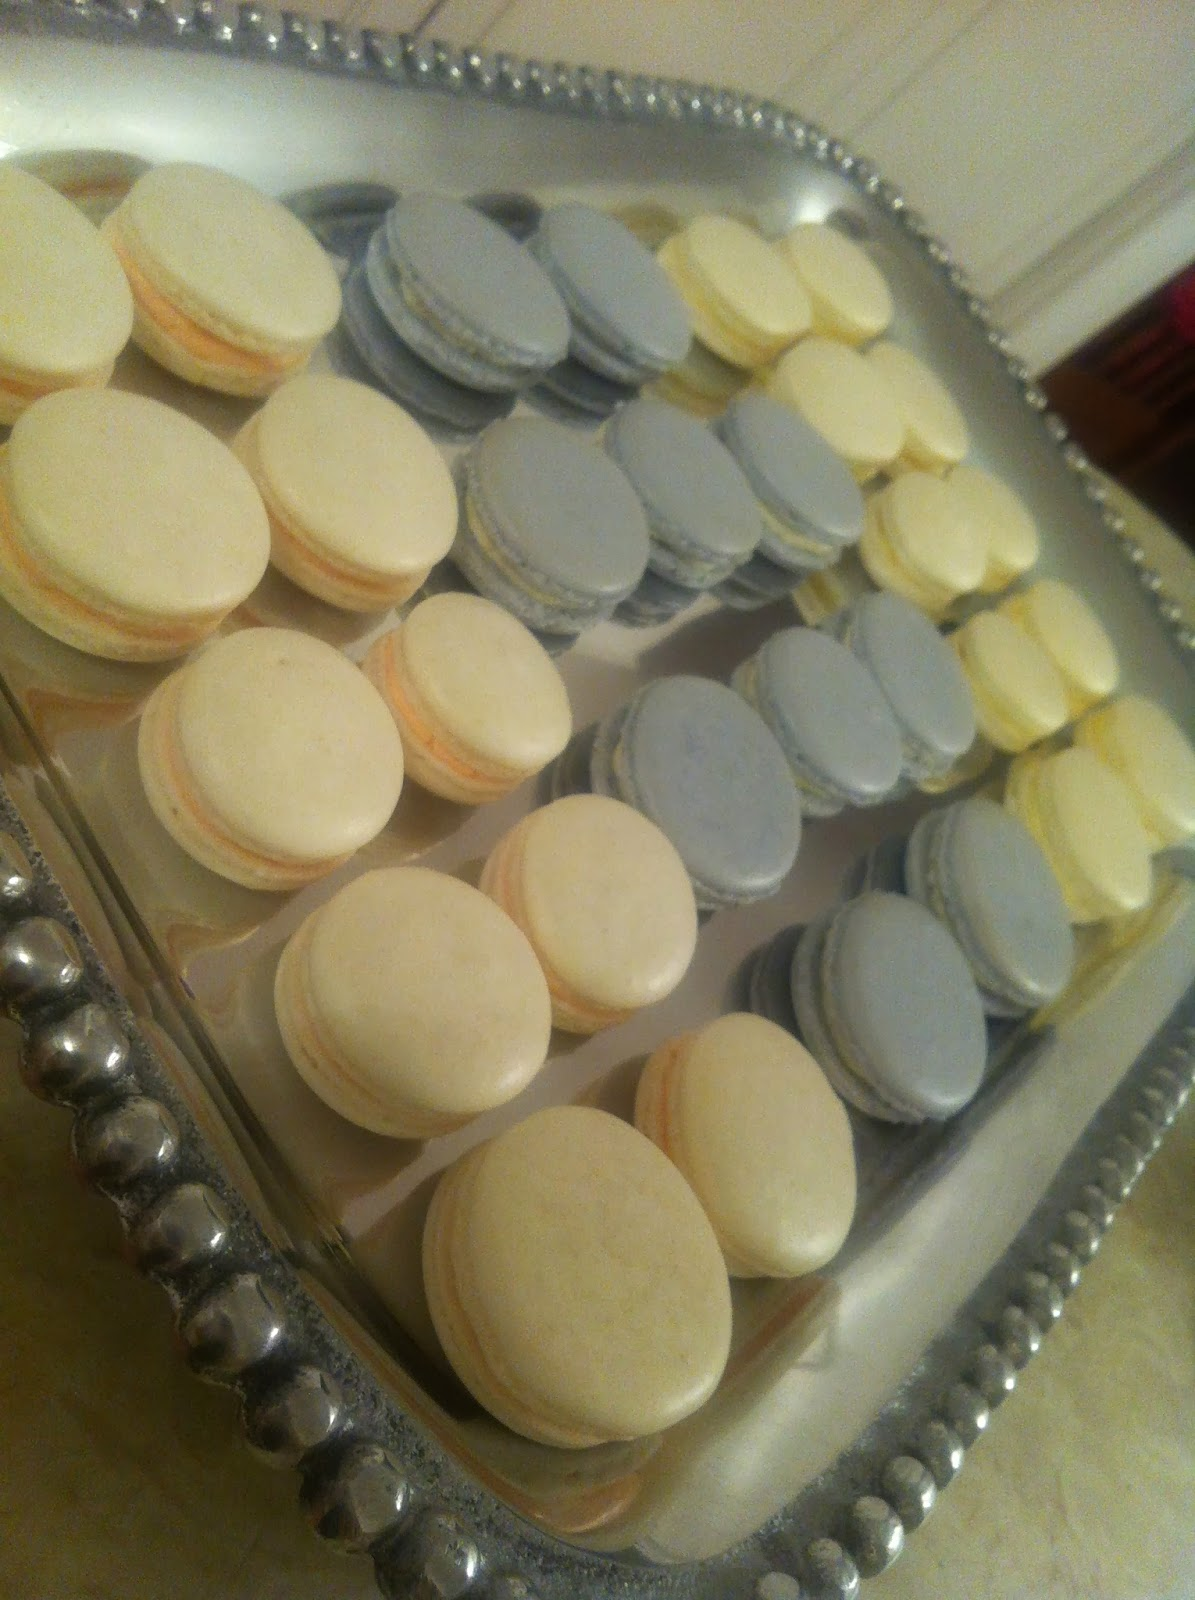 Utah County Wedding Cakes & Dessert Catering dōTERRA French Macarons & Mini Cheesecakes